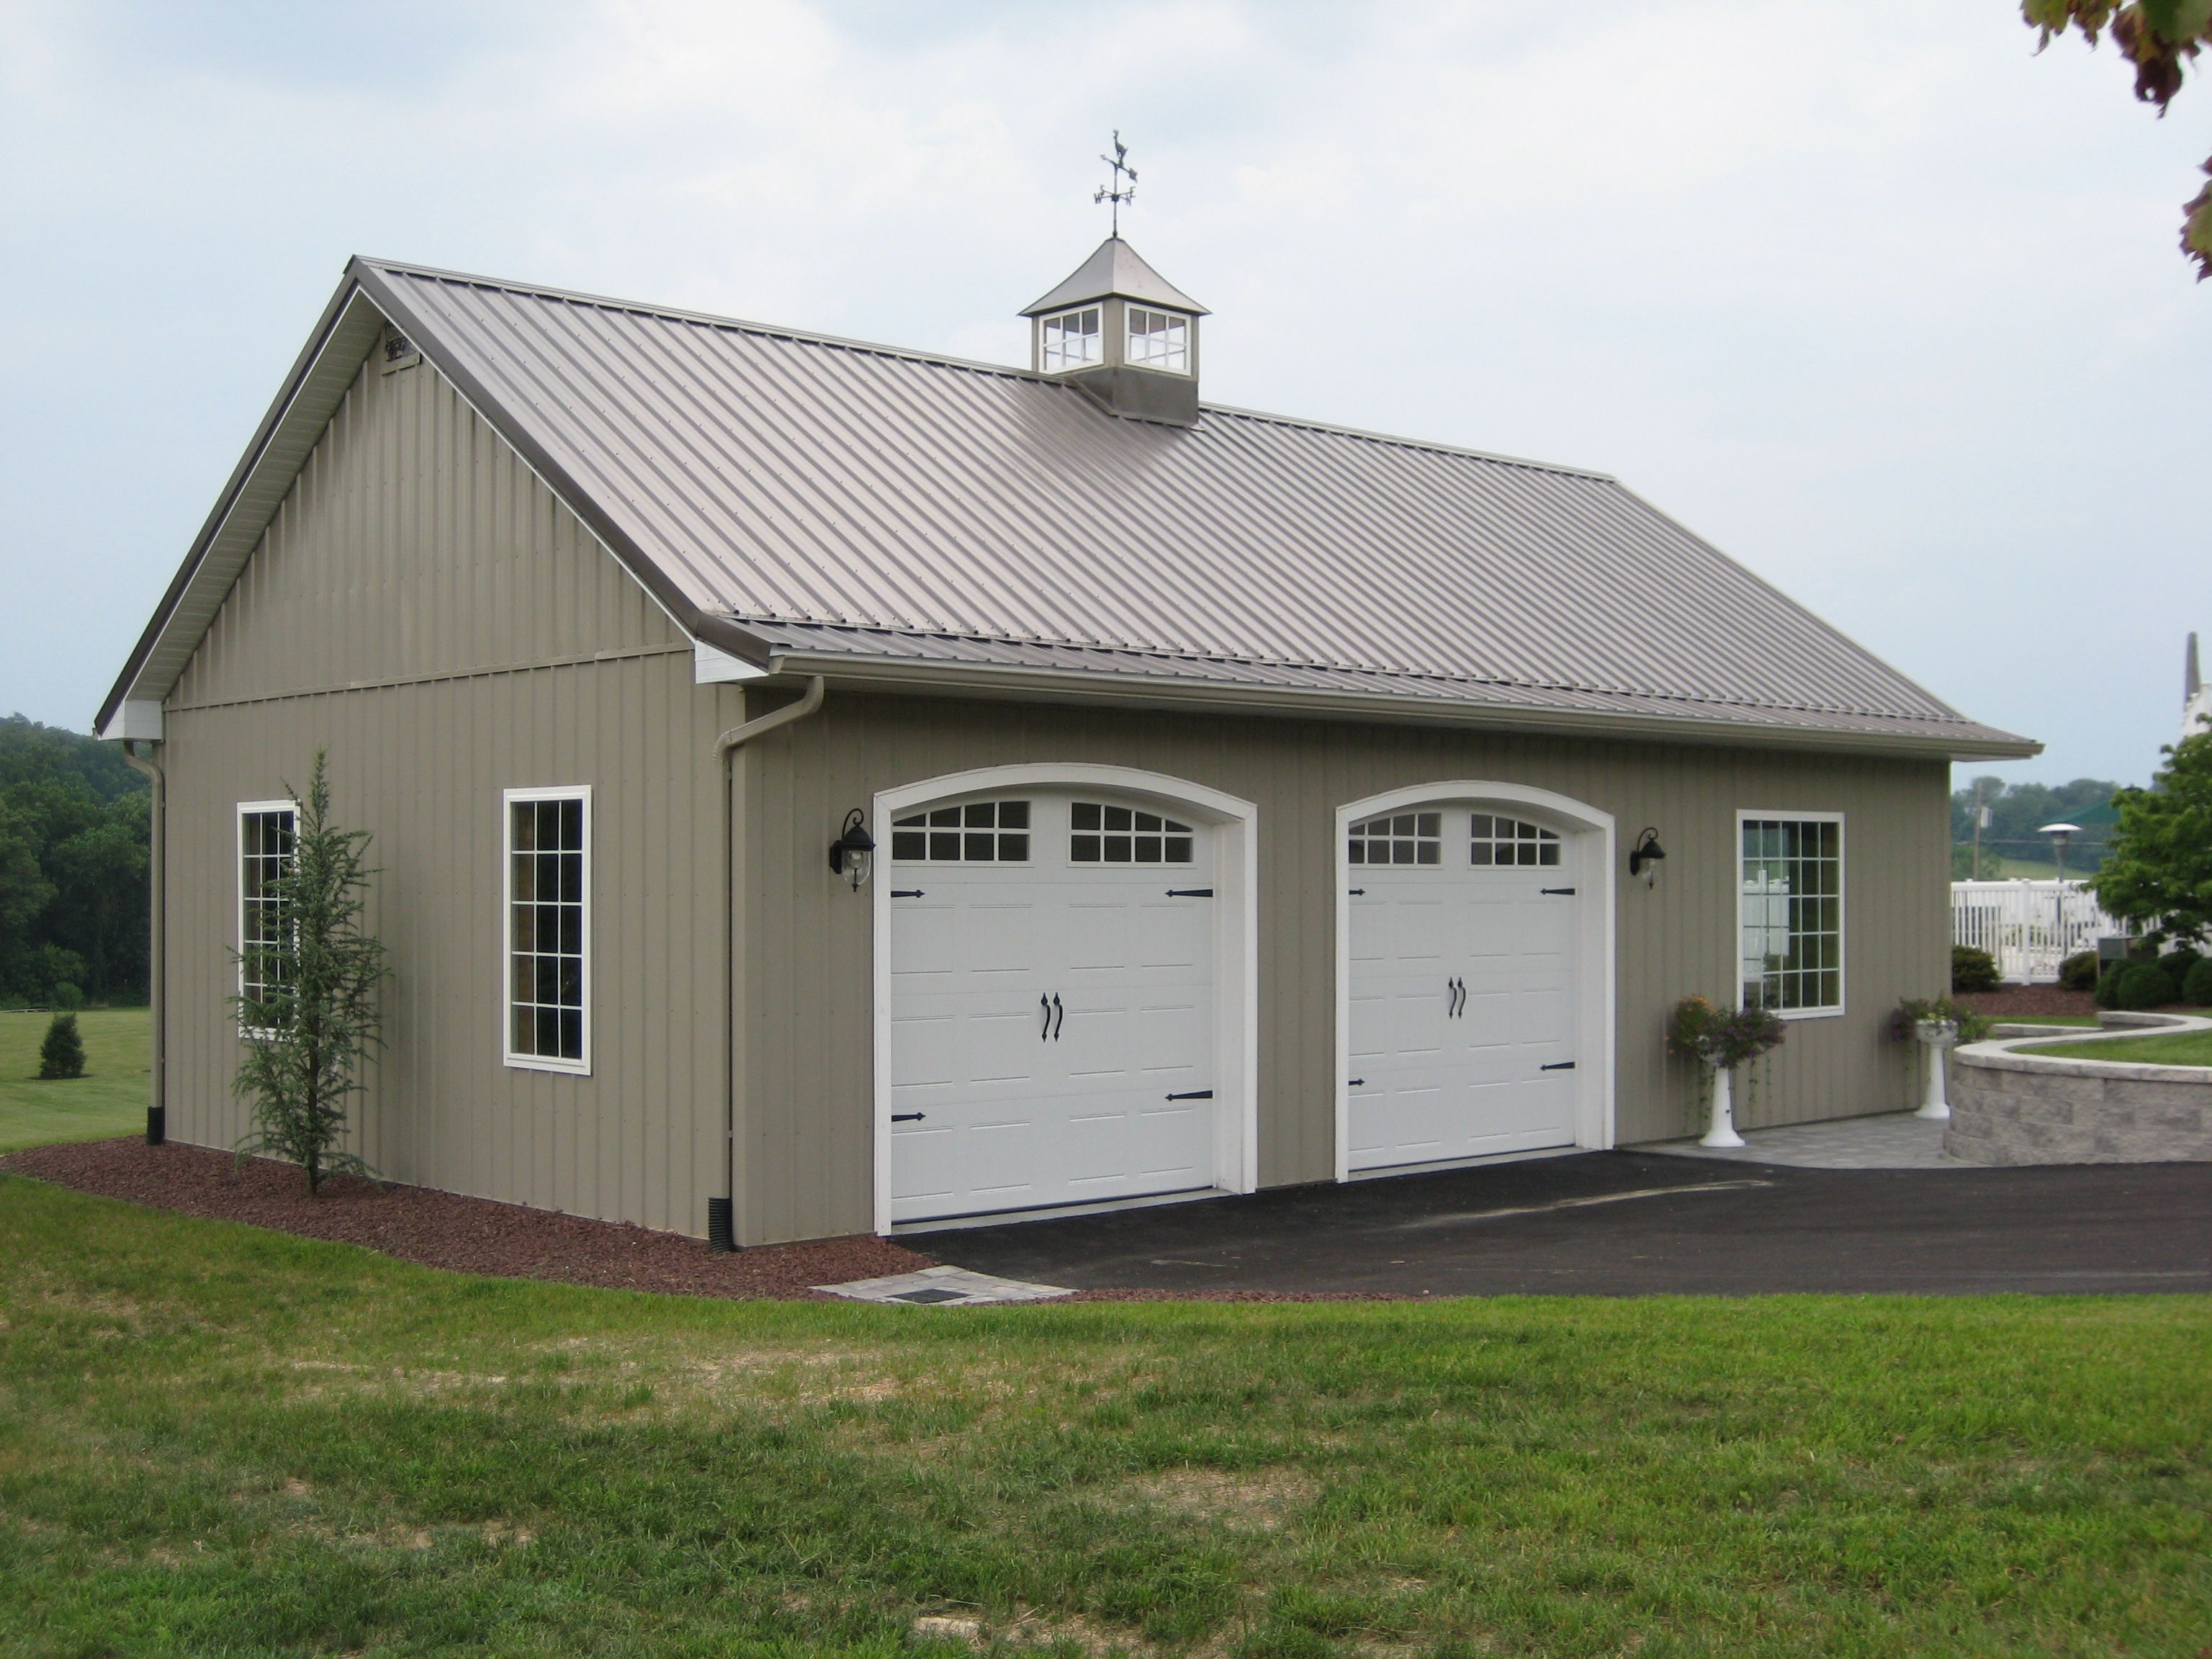 Best 25 pole barn garage ideas on pinterest pole barns for Metal building house ideas